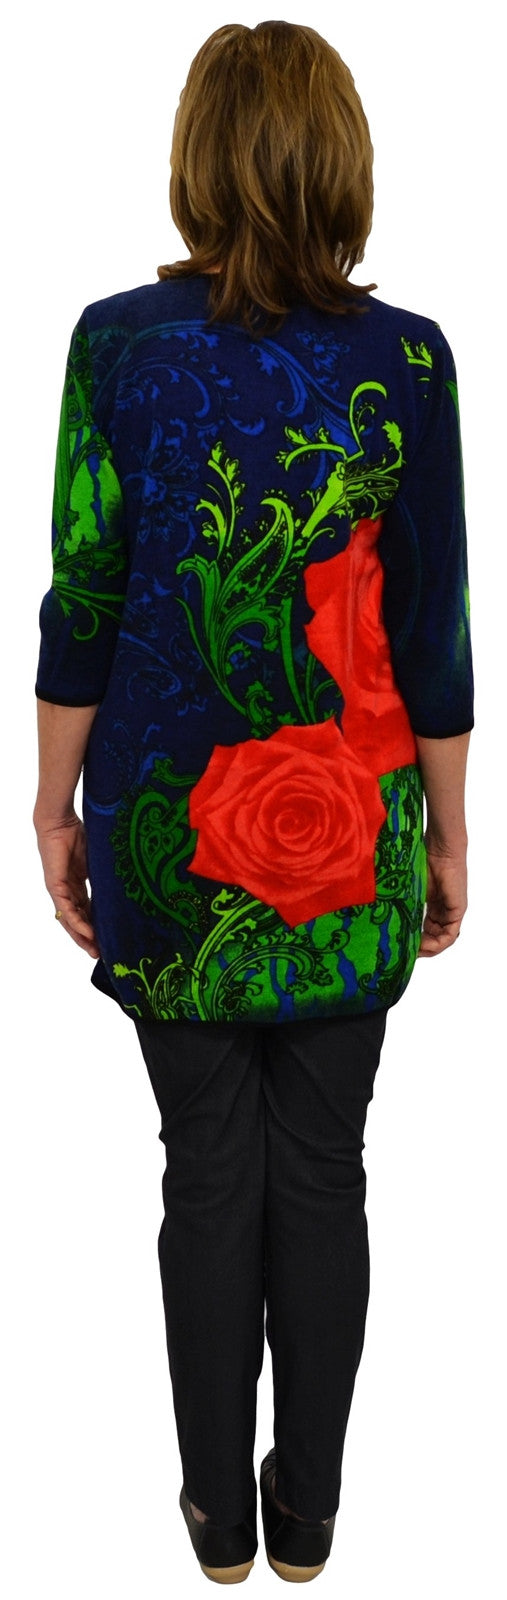 Navy Rose Tunic | I Love Tunics | Tunic Tops | Tunic | Tunic Dresses  | womens clothing online